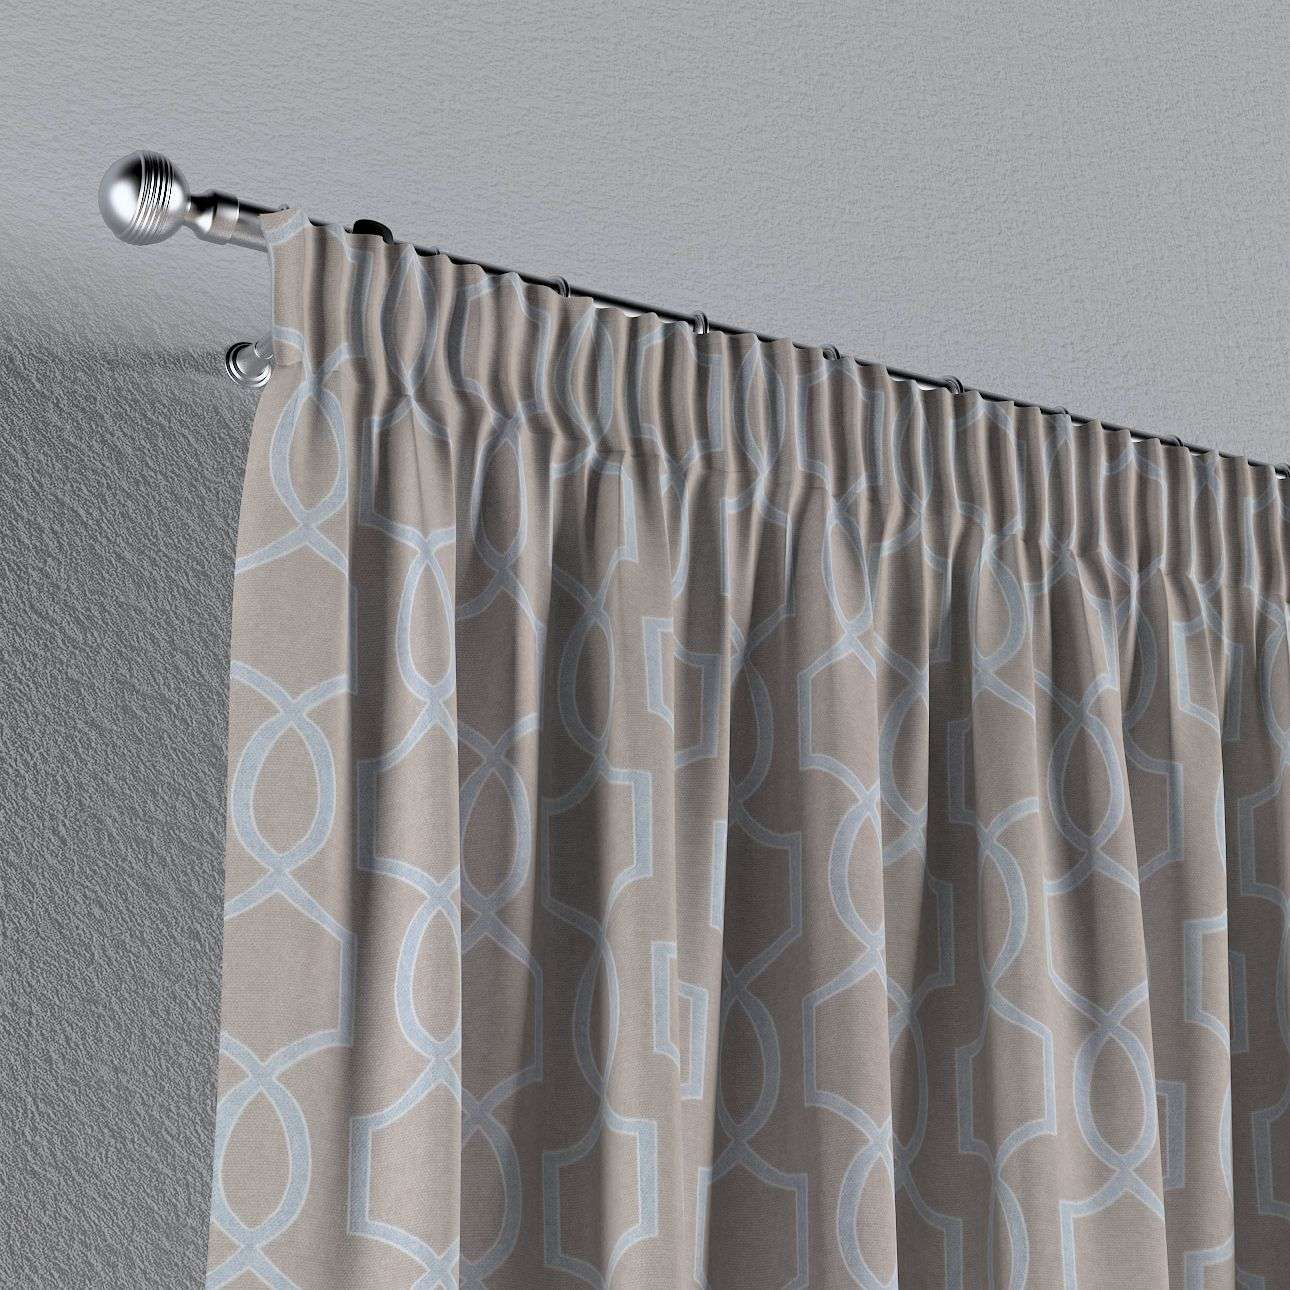 Pencil pleat curtains 130 x 260 cm (51 x 102 inch) in collection Comic Book & Geo Prints, fabric: 141-26